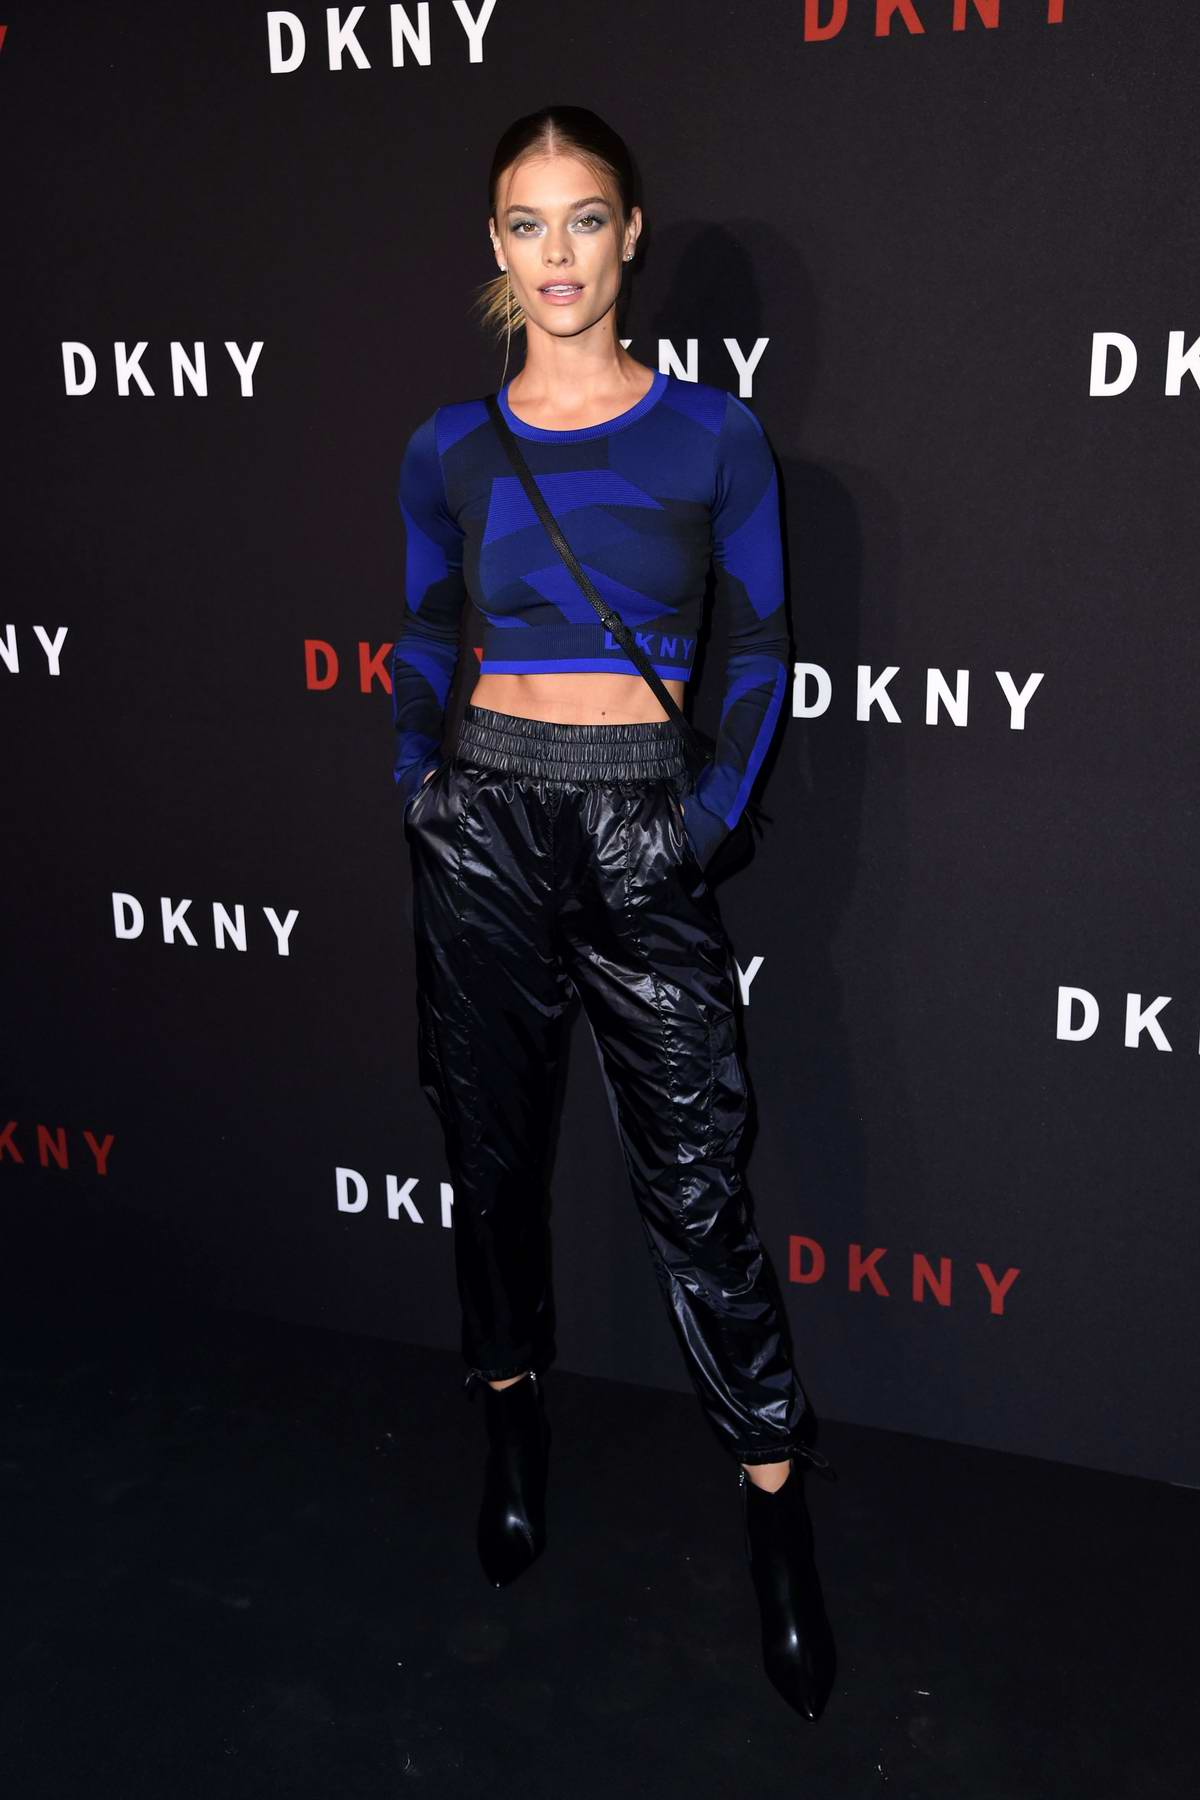 Nina Agdal attends DKNY 30th birthday party during New York Fashion Week in New York City